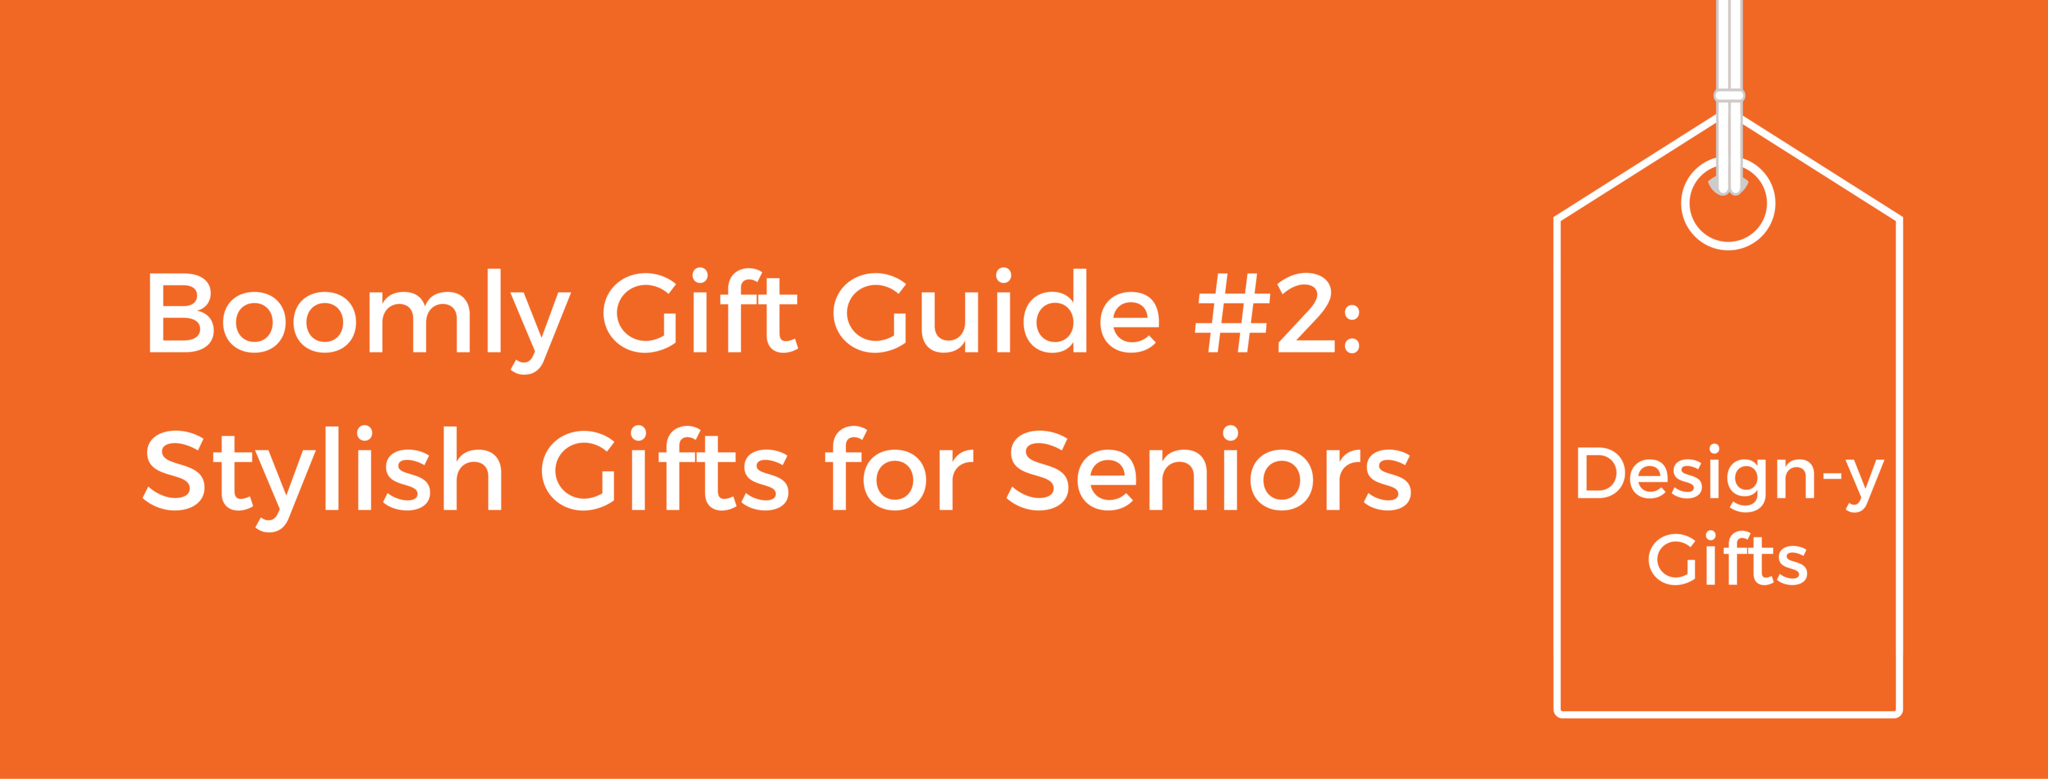 Design-y Gift Ideas for Stylish Seniors